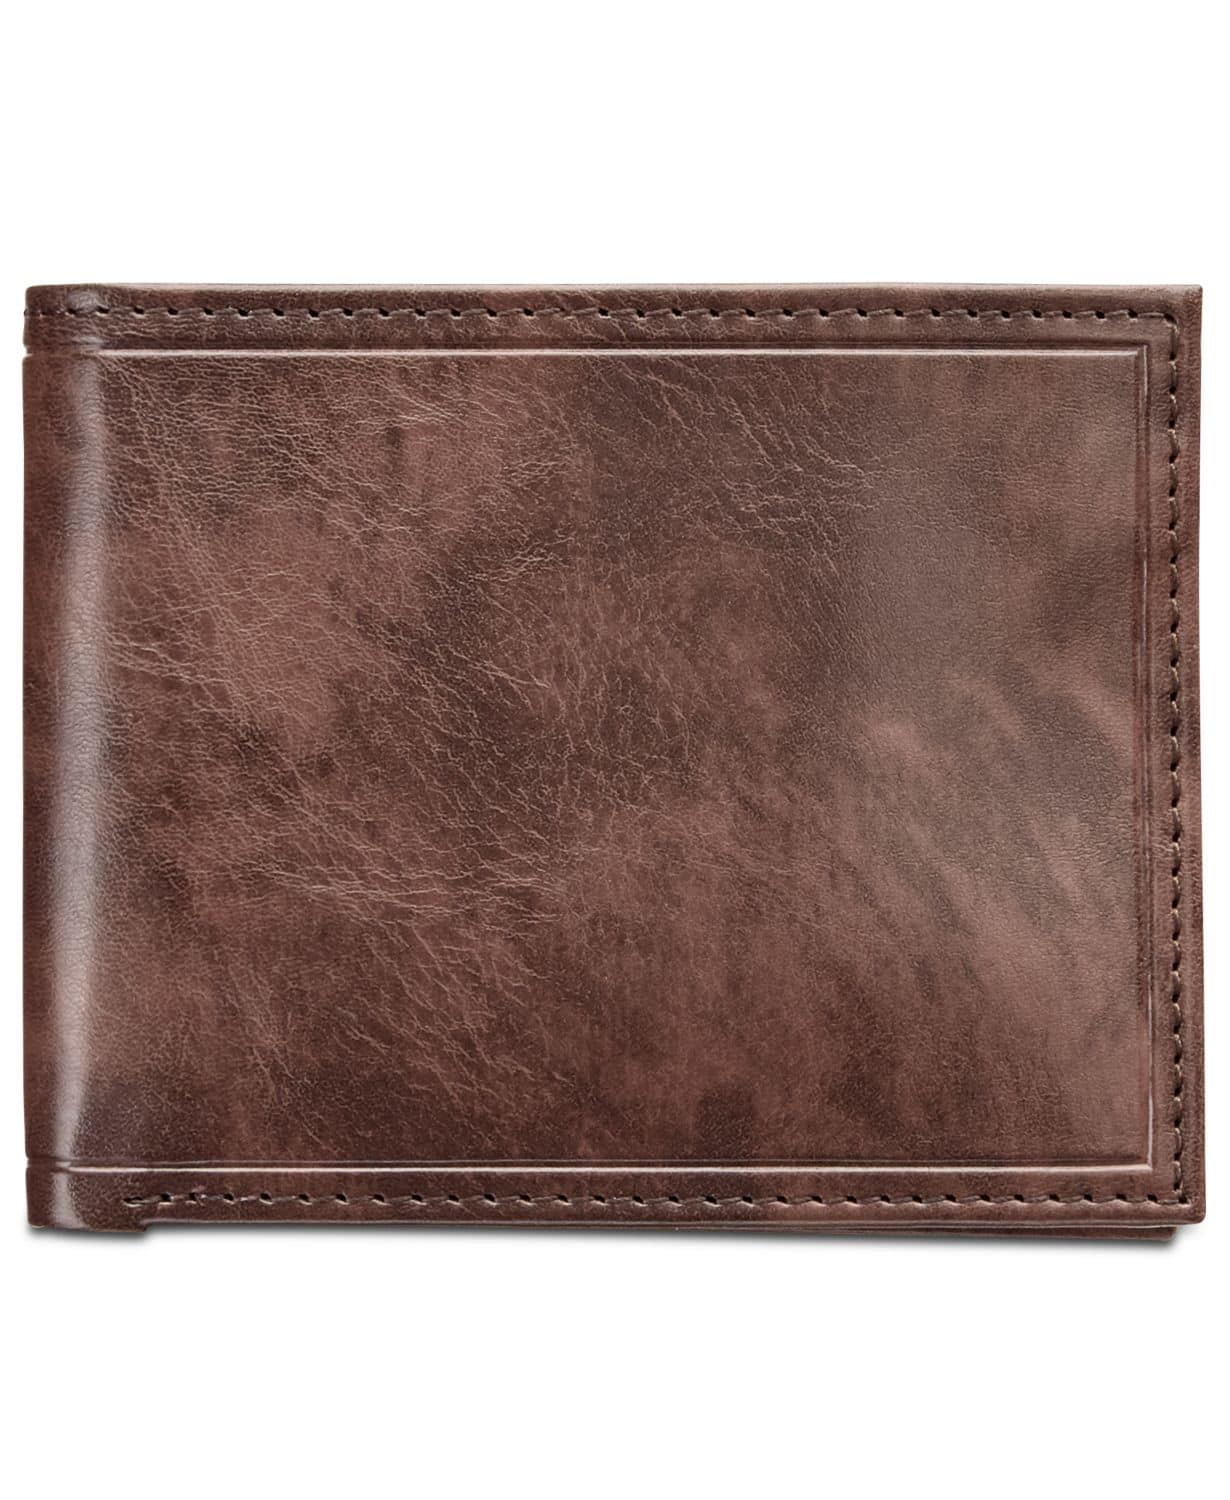 Men's Faux-Leather Wallet, Created for Macy's $11.99